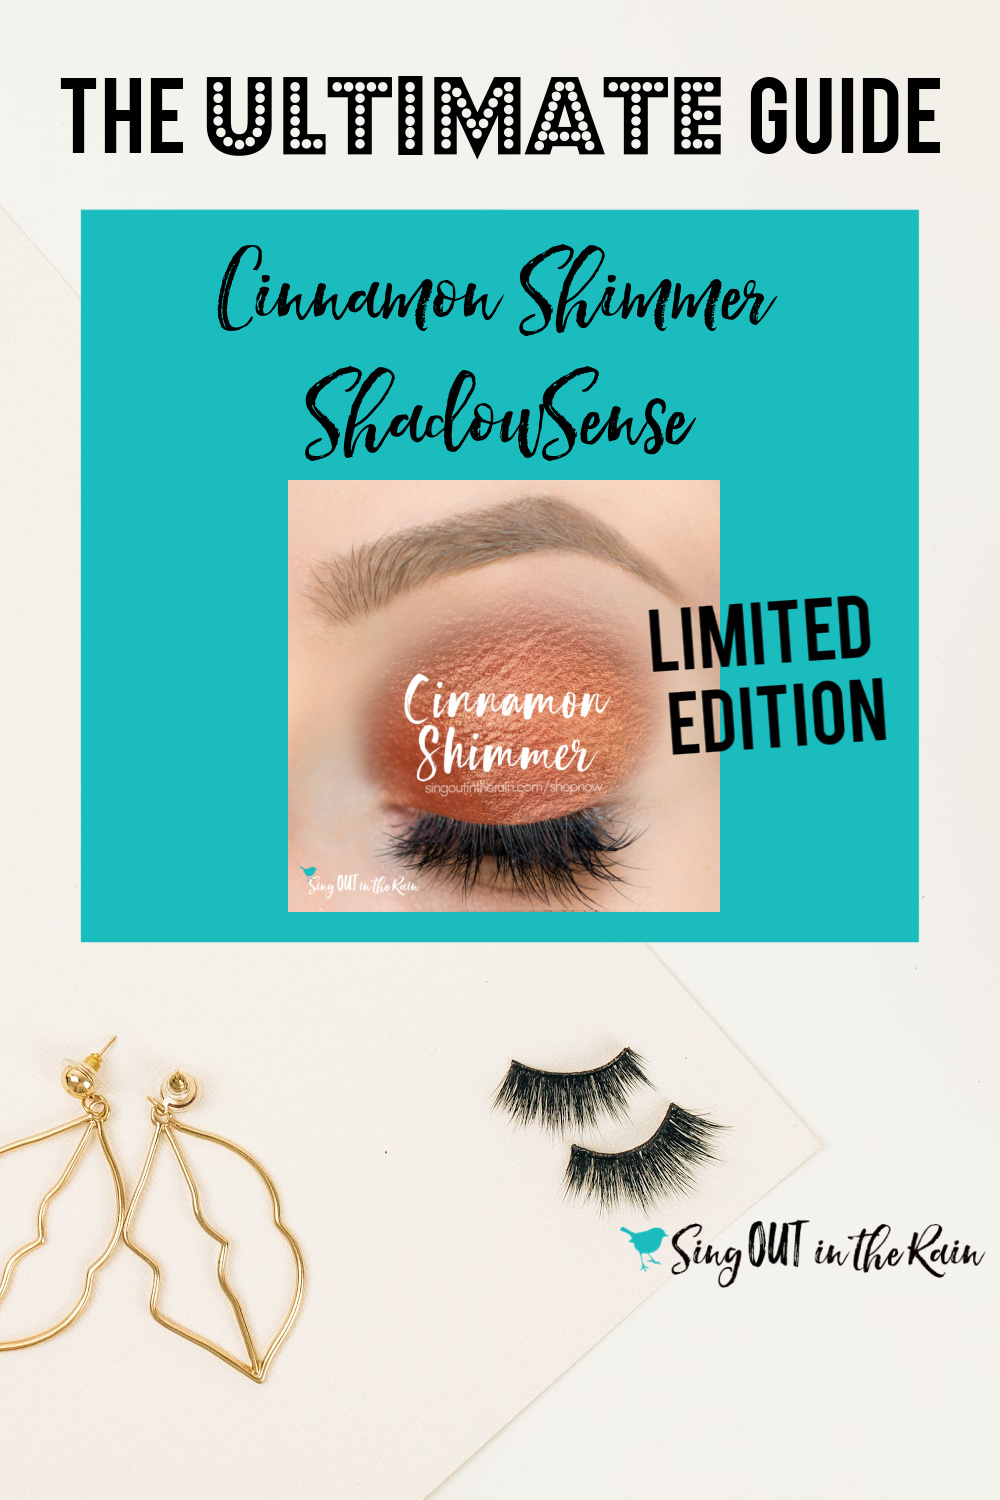 The Ultimate Guide to Cinnamon Shimmer ShadowSense